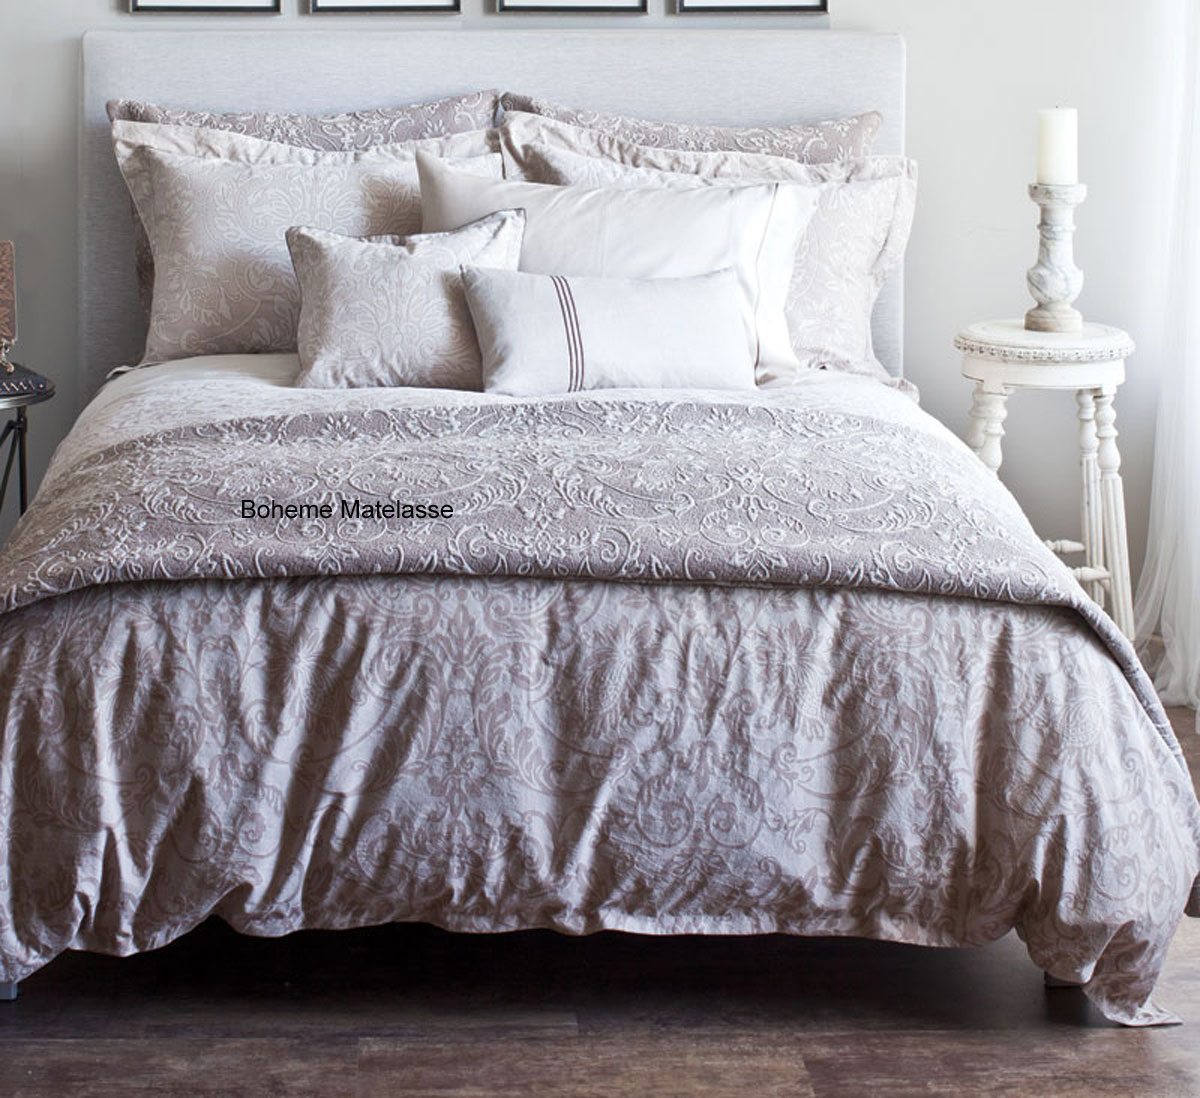 Boheme Fawn by St. Geneve Luxury Bedding